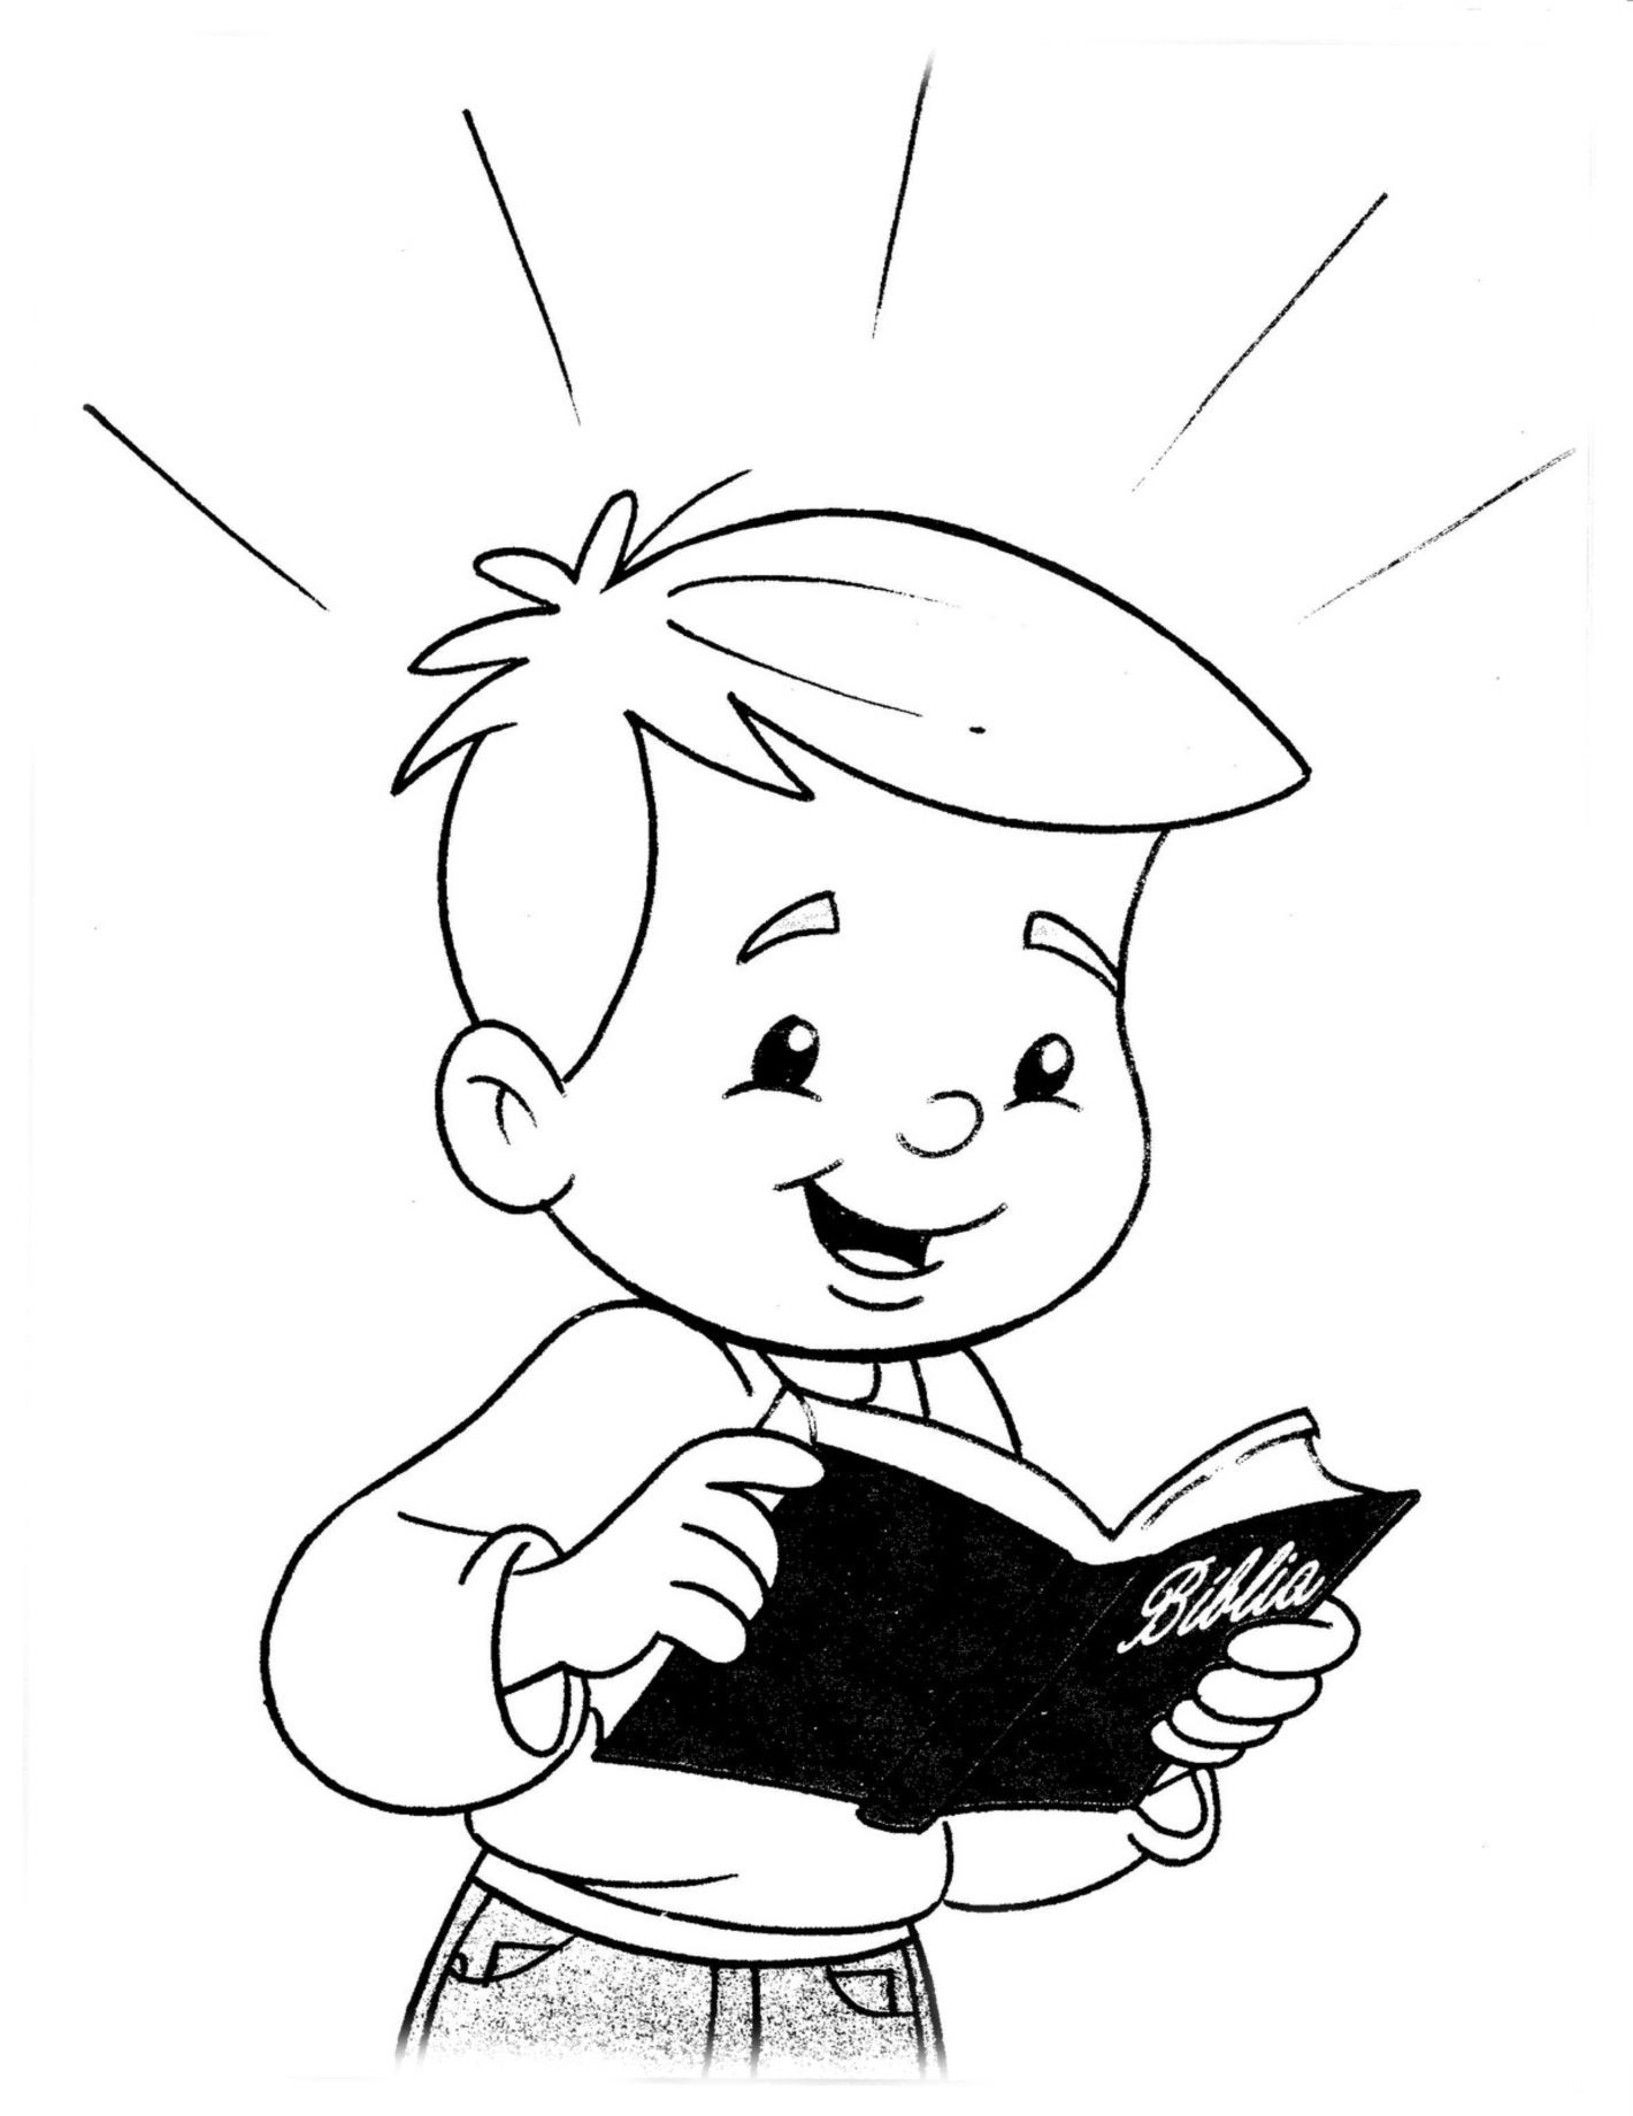 bible coloring pages for kids 5 | Church | Pinterest | Bible ...